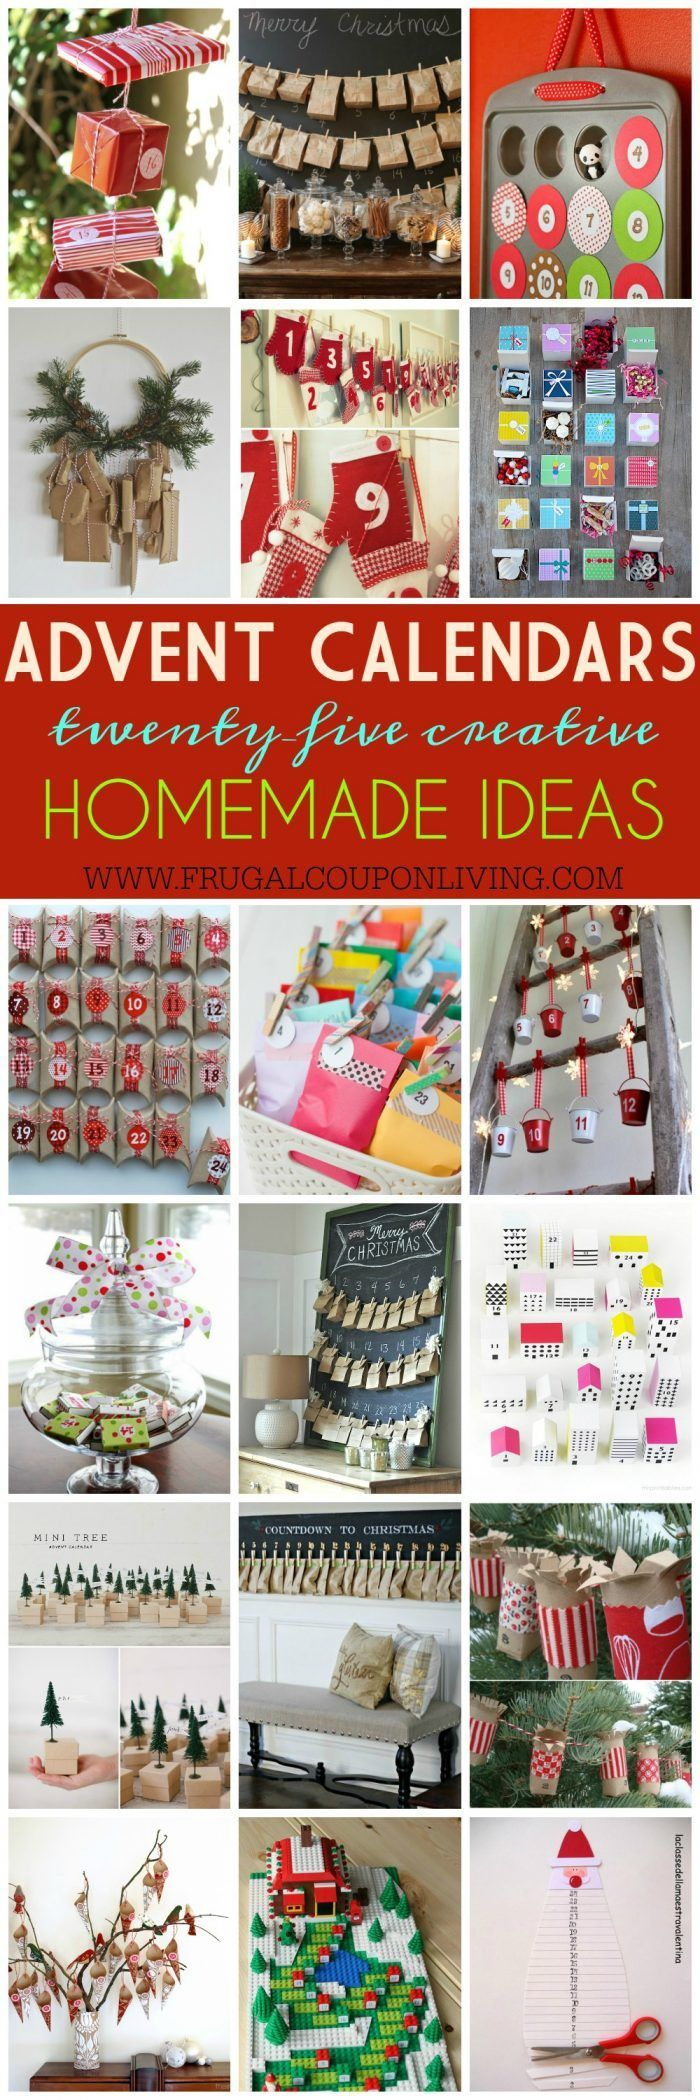 25 Homemade Advent Calendars on Frugal Coupon Living plus ideas for your Christmas Cookie Exchange and Homemade DIY Christmas Gift Ideas.